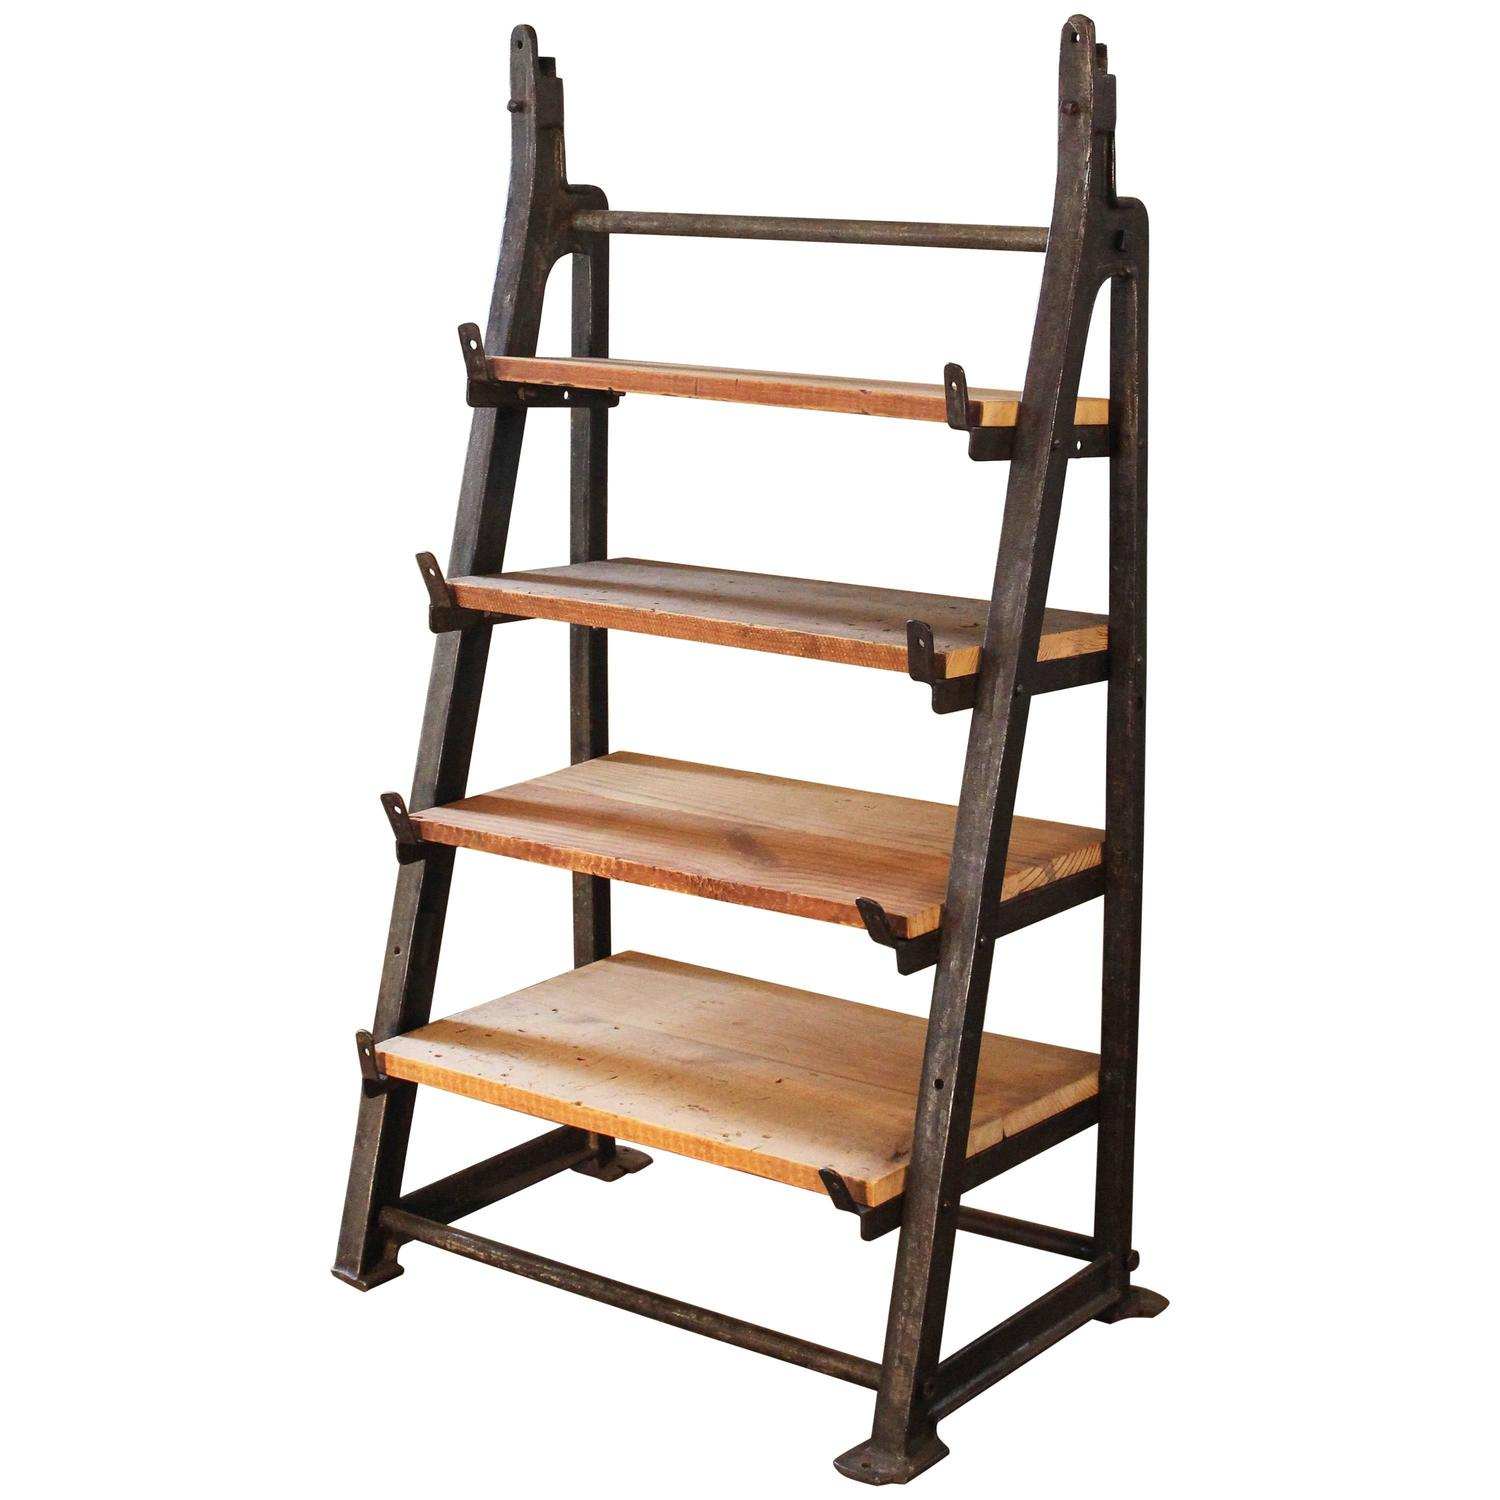 Wonderful image of  Cast Iron Wood Shelving Shelf Storage Unit For Sale at 1stdibs with #A34B28 color and 1500x1500 pixels